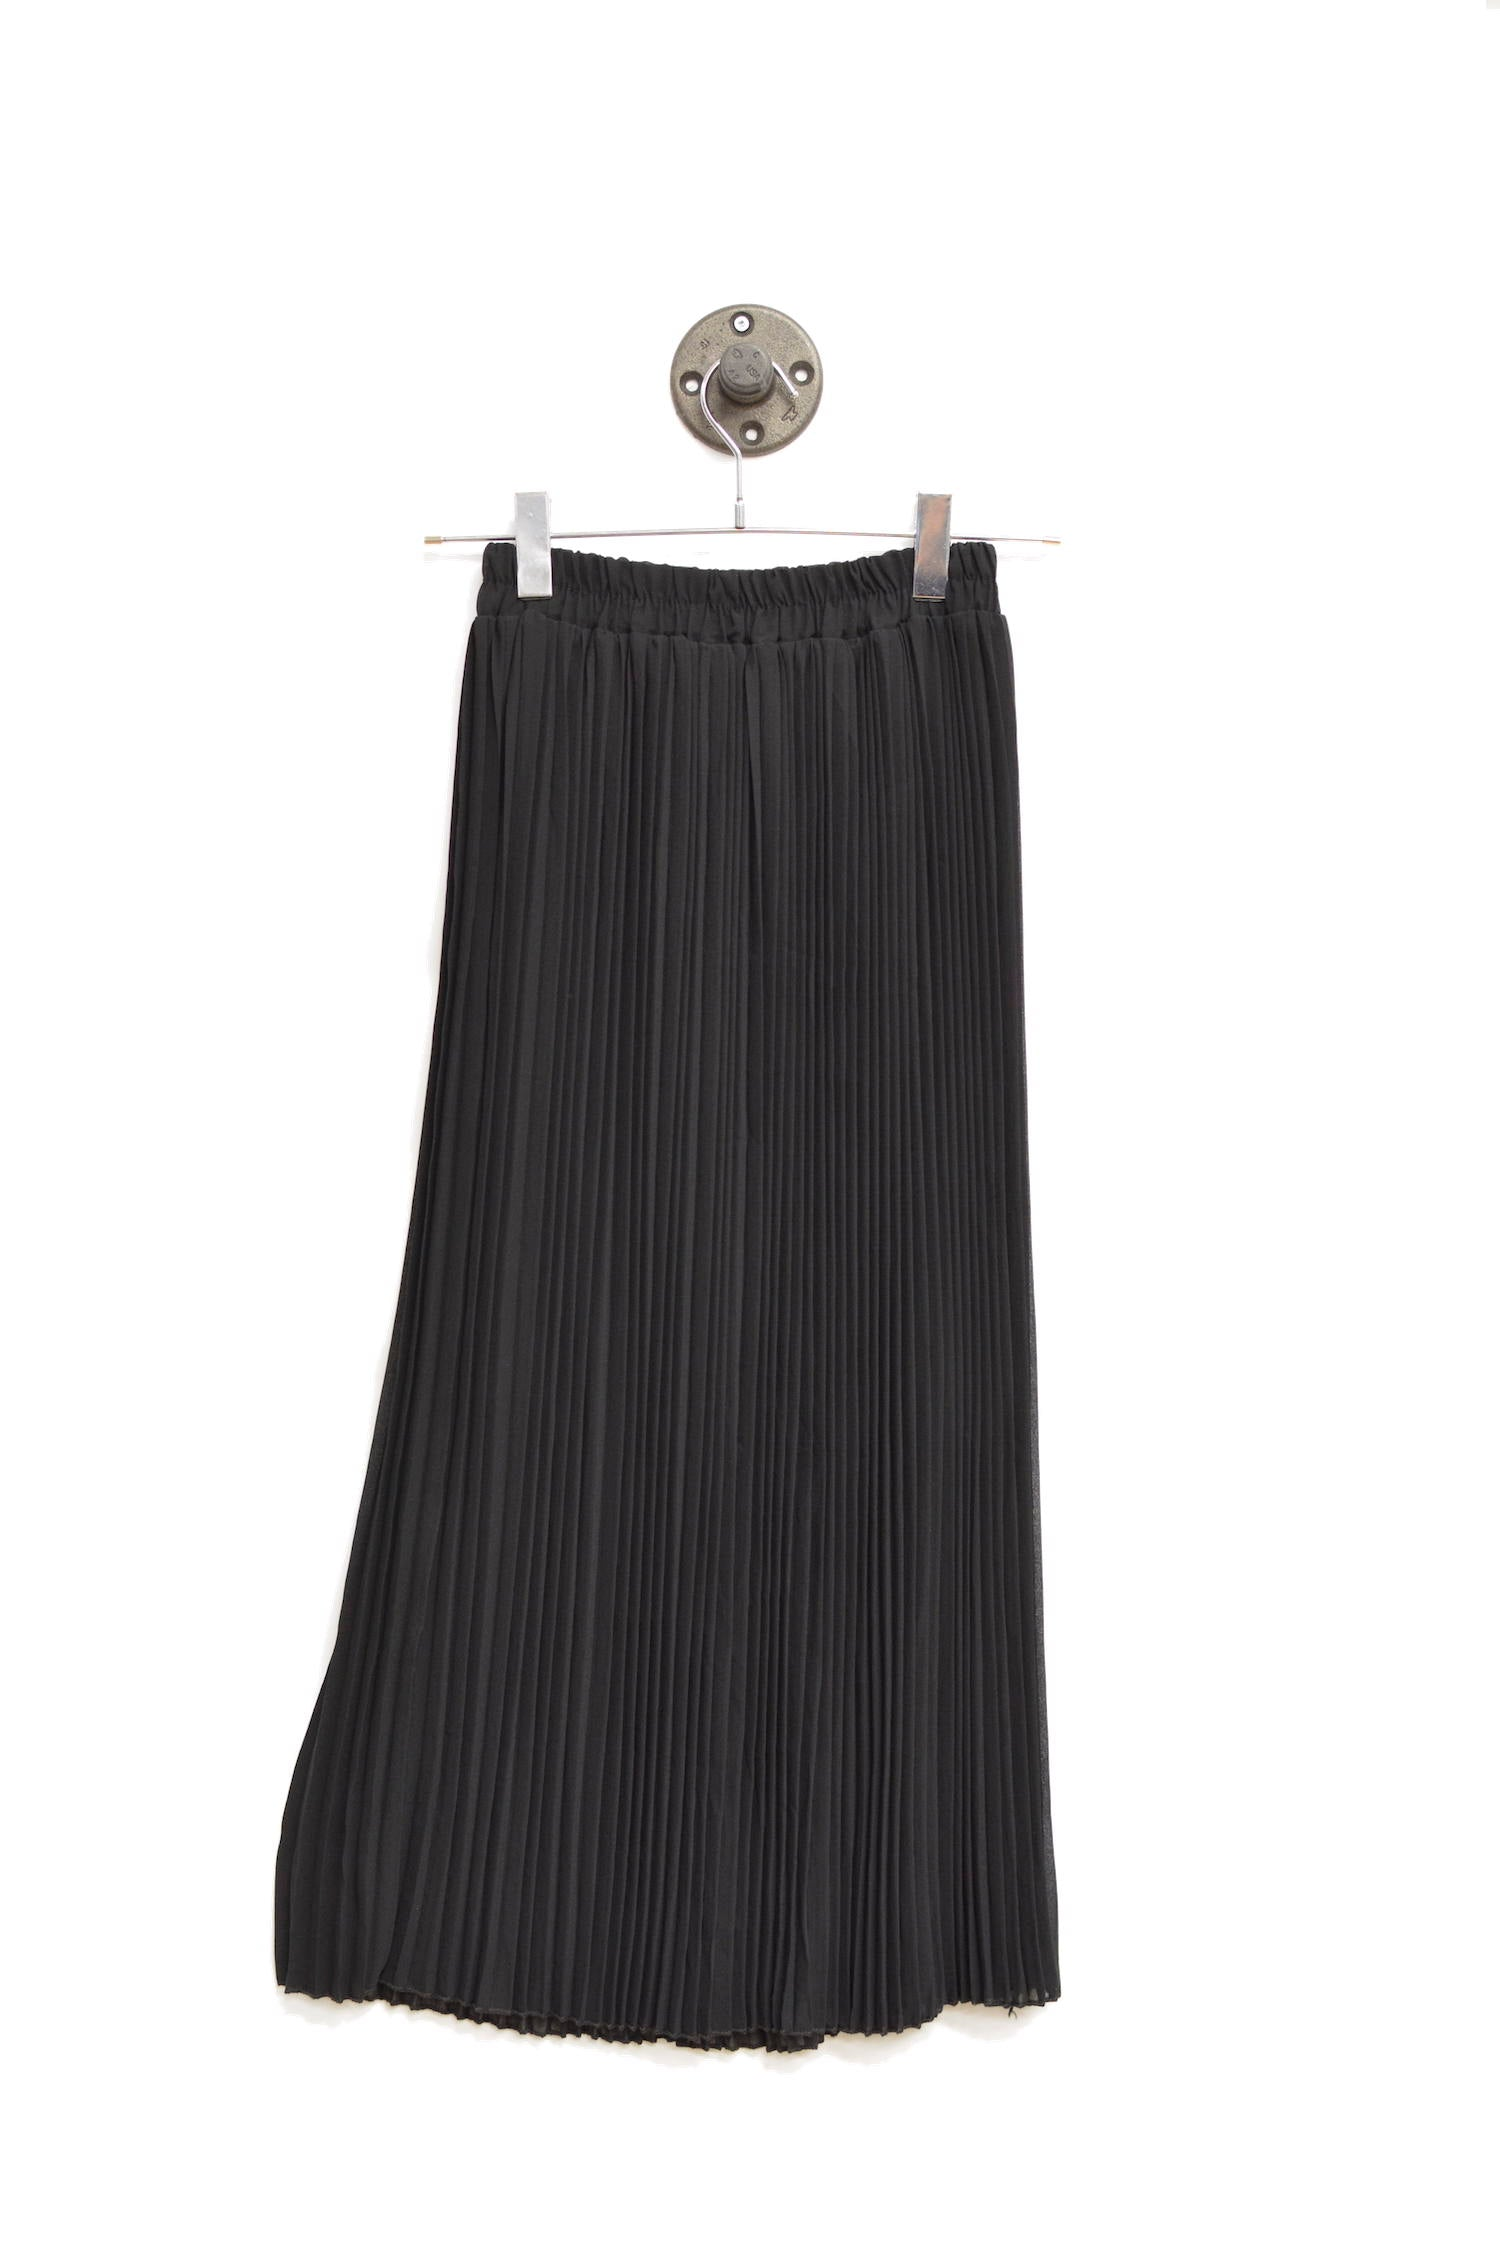 Black Maxi Pleated Skirt With An Elastic waistband